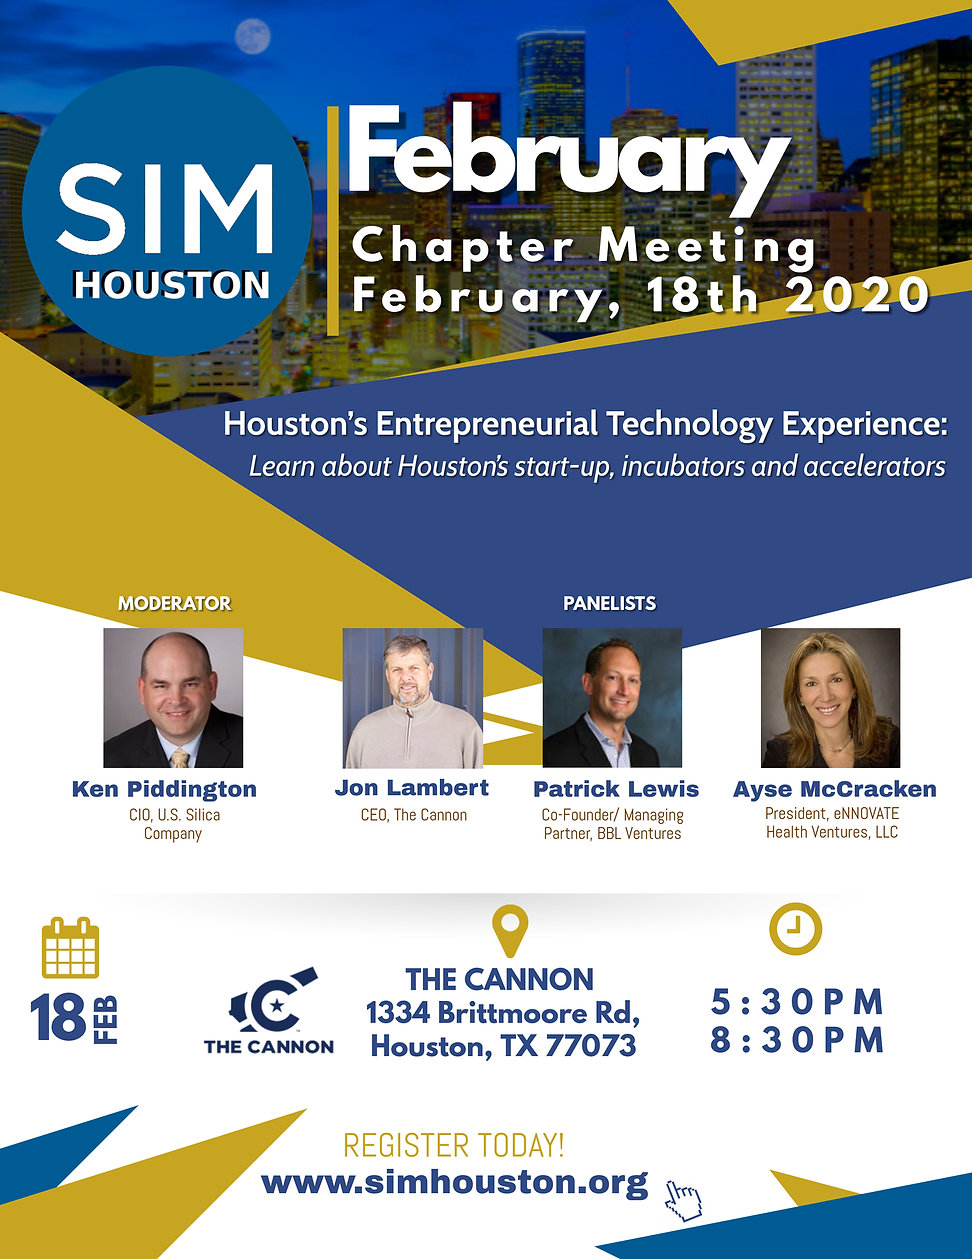 2 February SIM Houston Chapter Meeting (